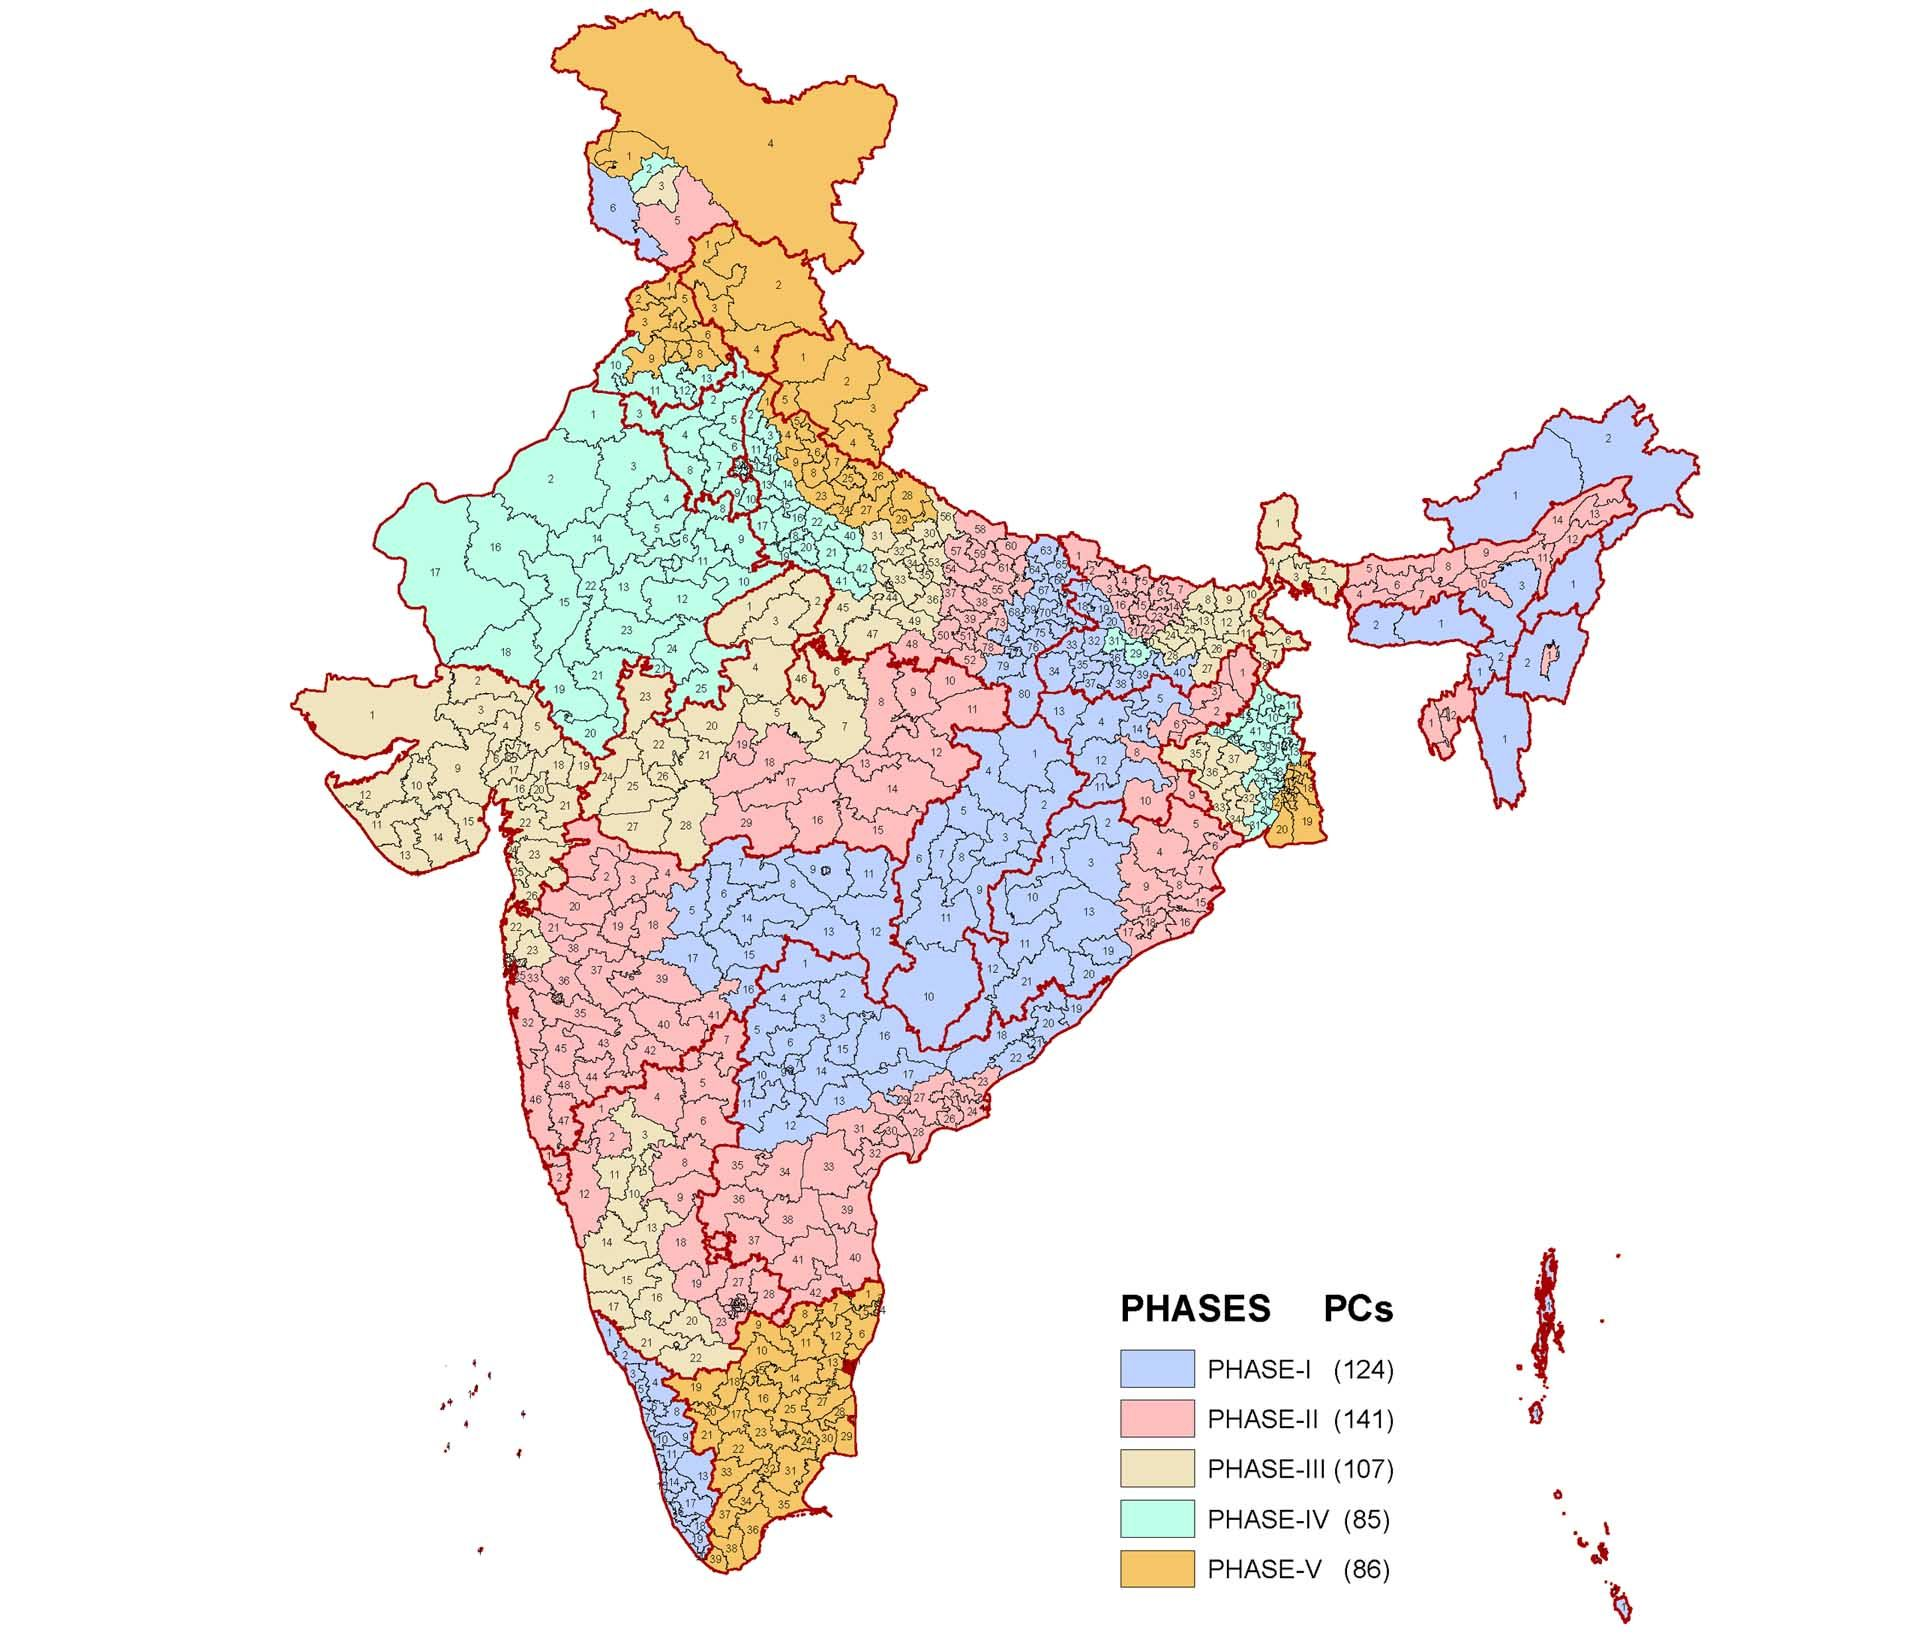 India map photos download india map wallpapers download free india map photos download india map wallpapers download free gumiabroncs Image collections